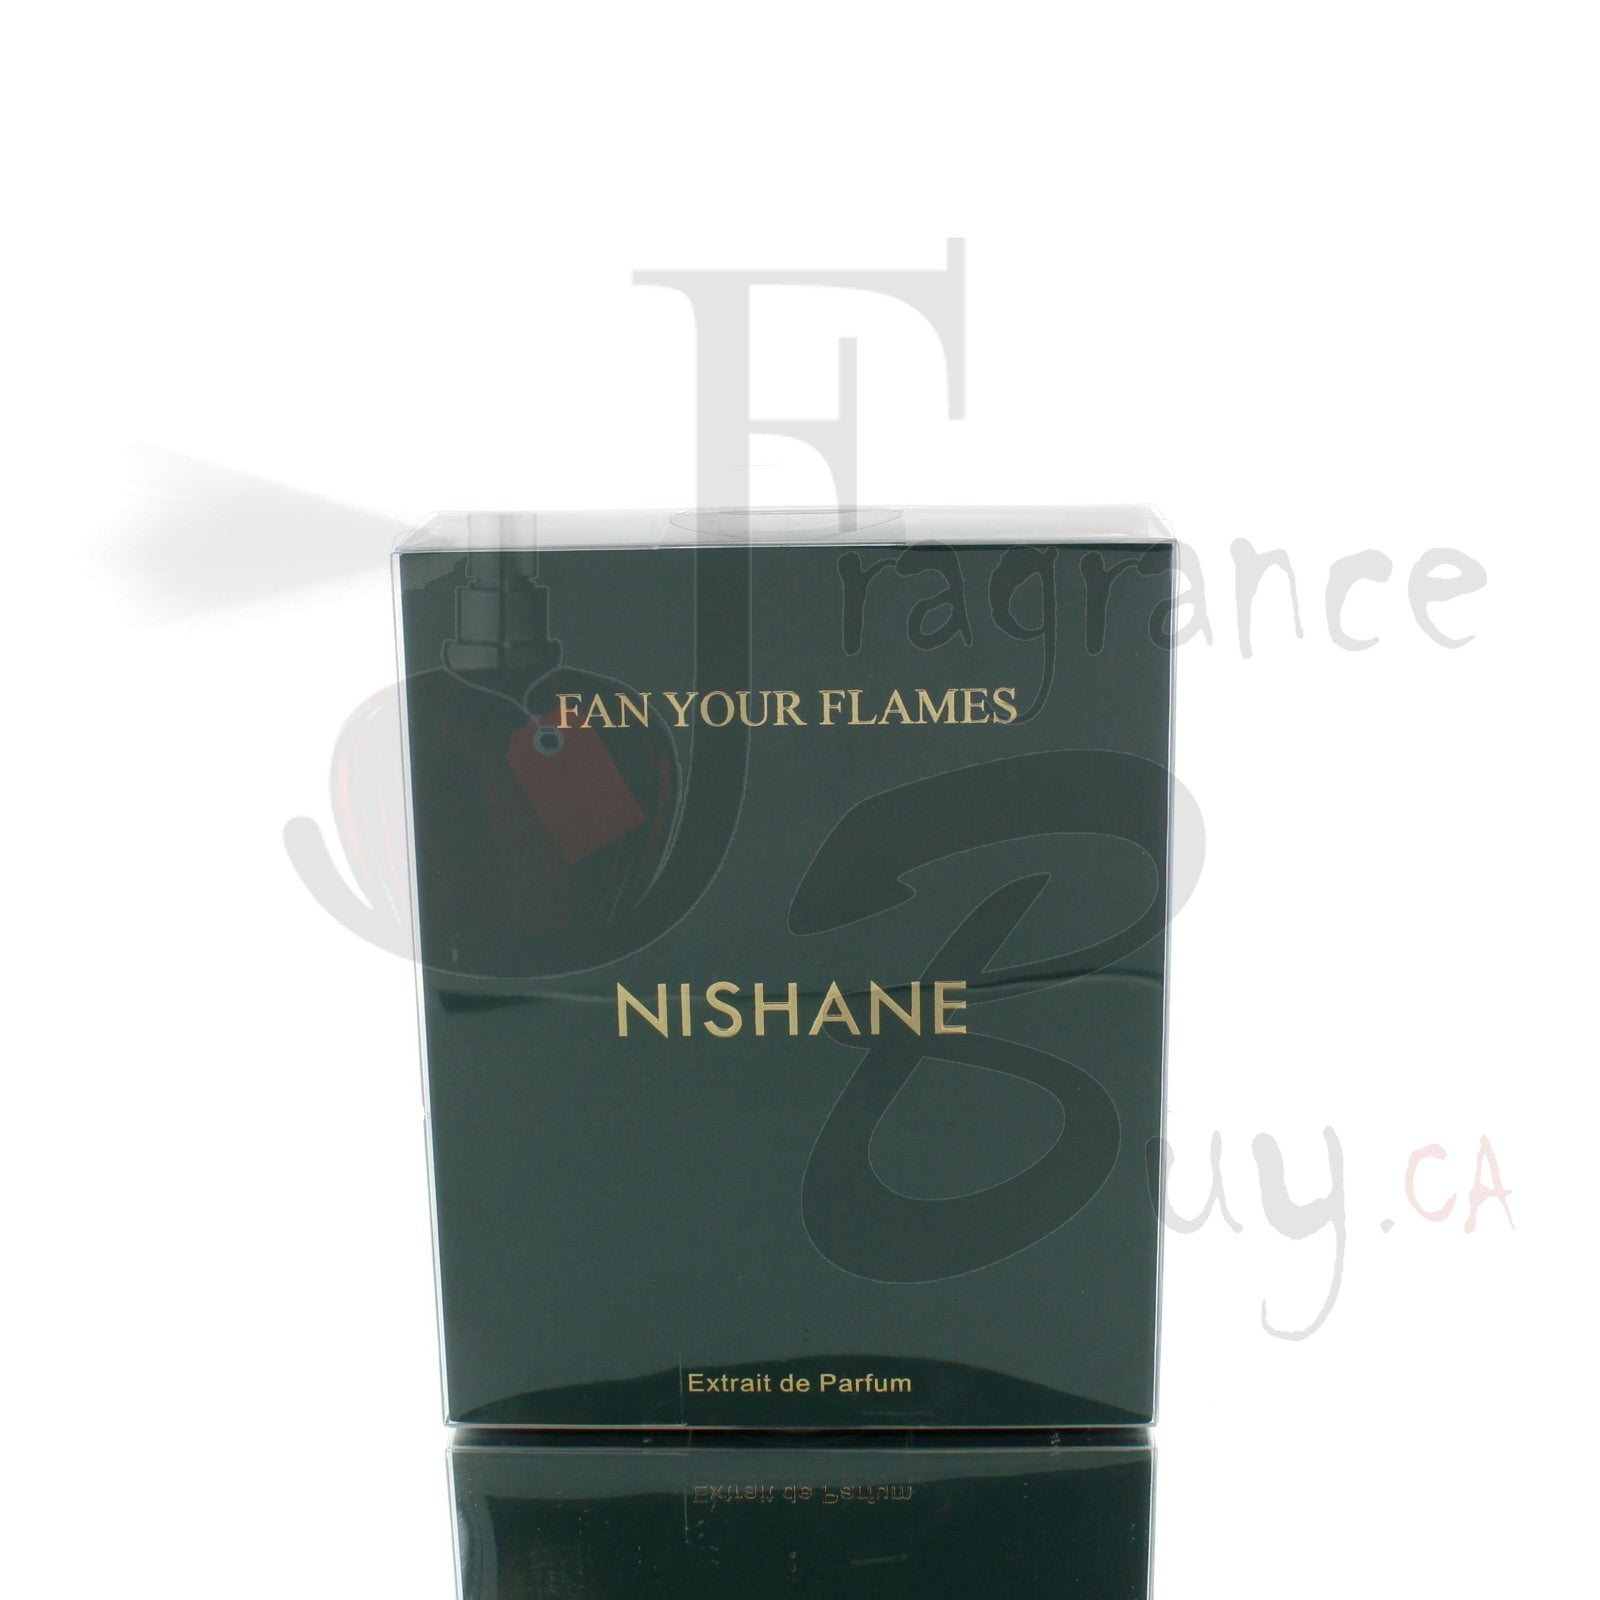 Nishane Fan Your Flames For Man/Woman